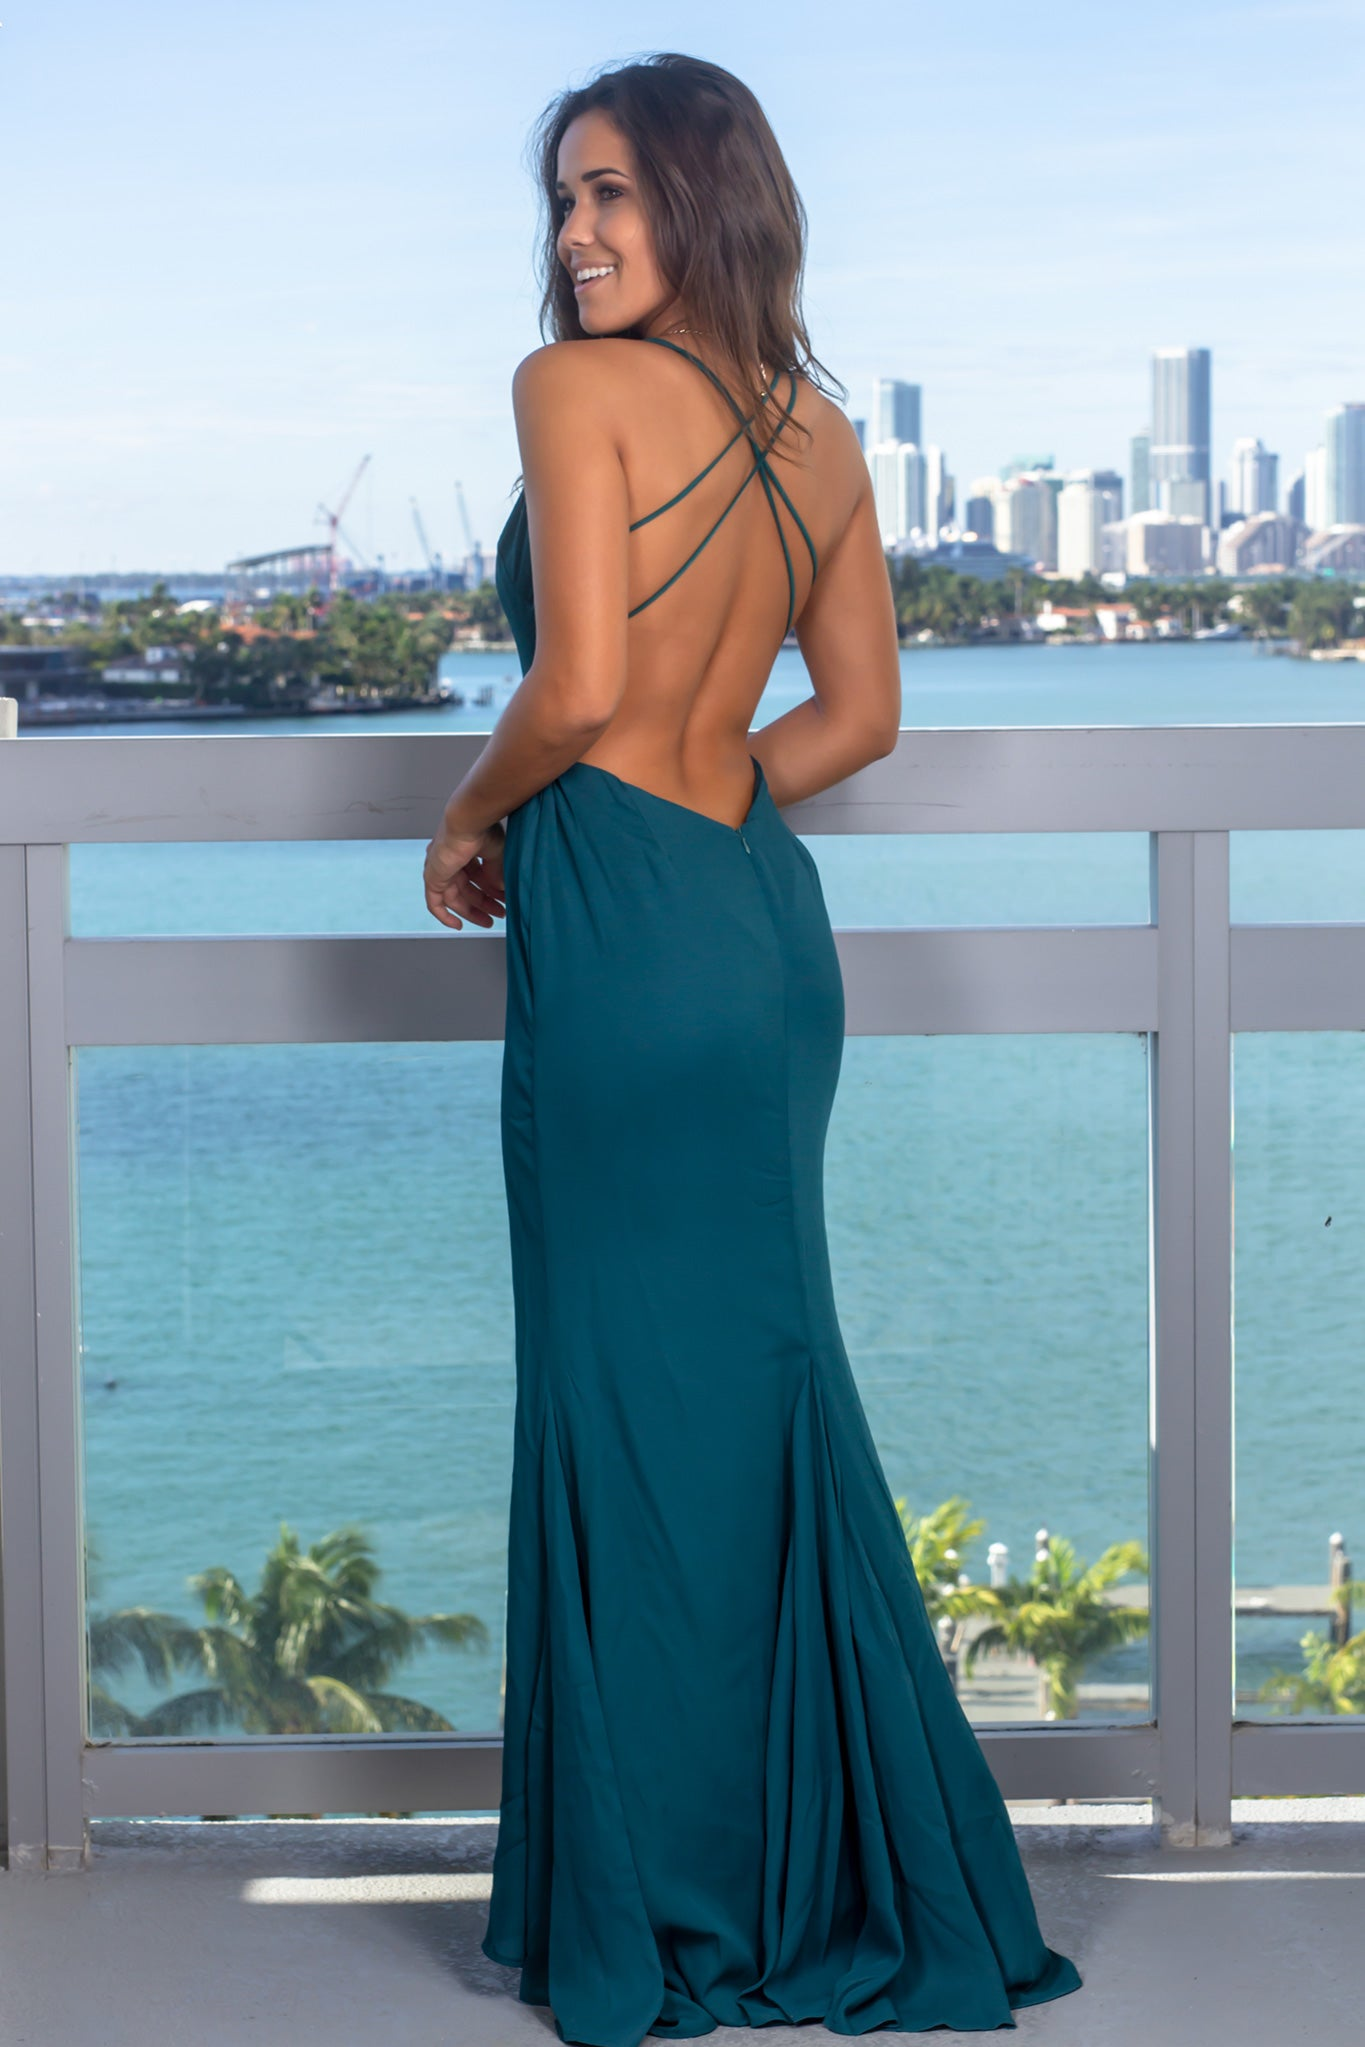 Teal V-Neck Maxi Dress with Front Slit